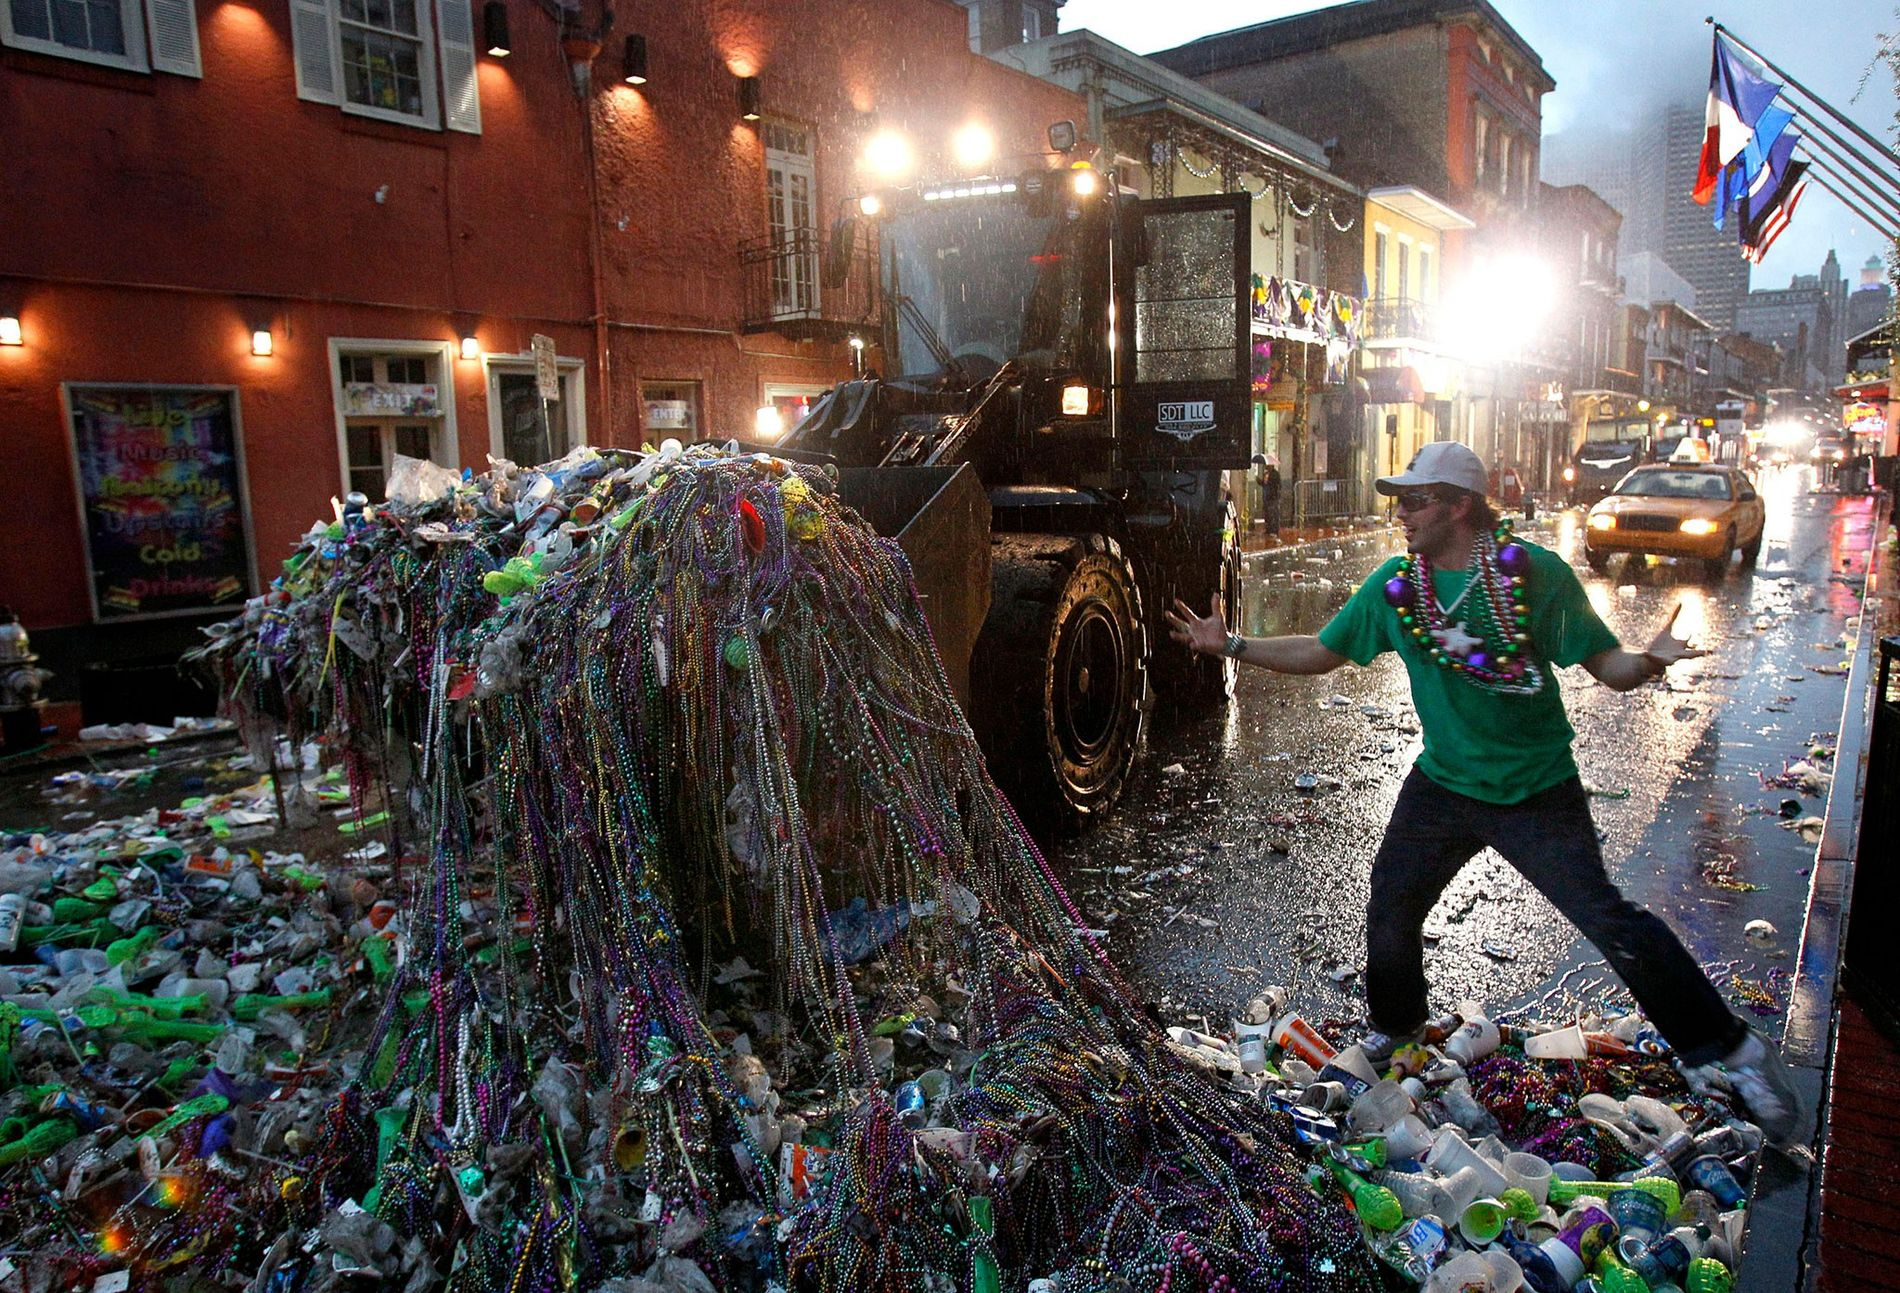 Mardi Gras reveler Mike Turpin, whose night still isn't over, watches as a front loader collects ...